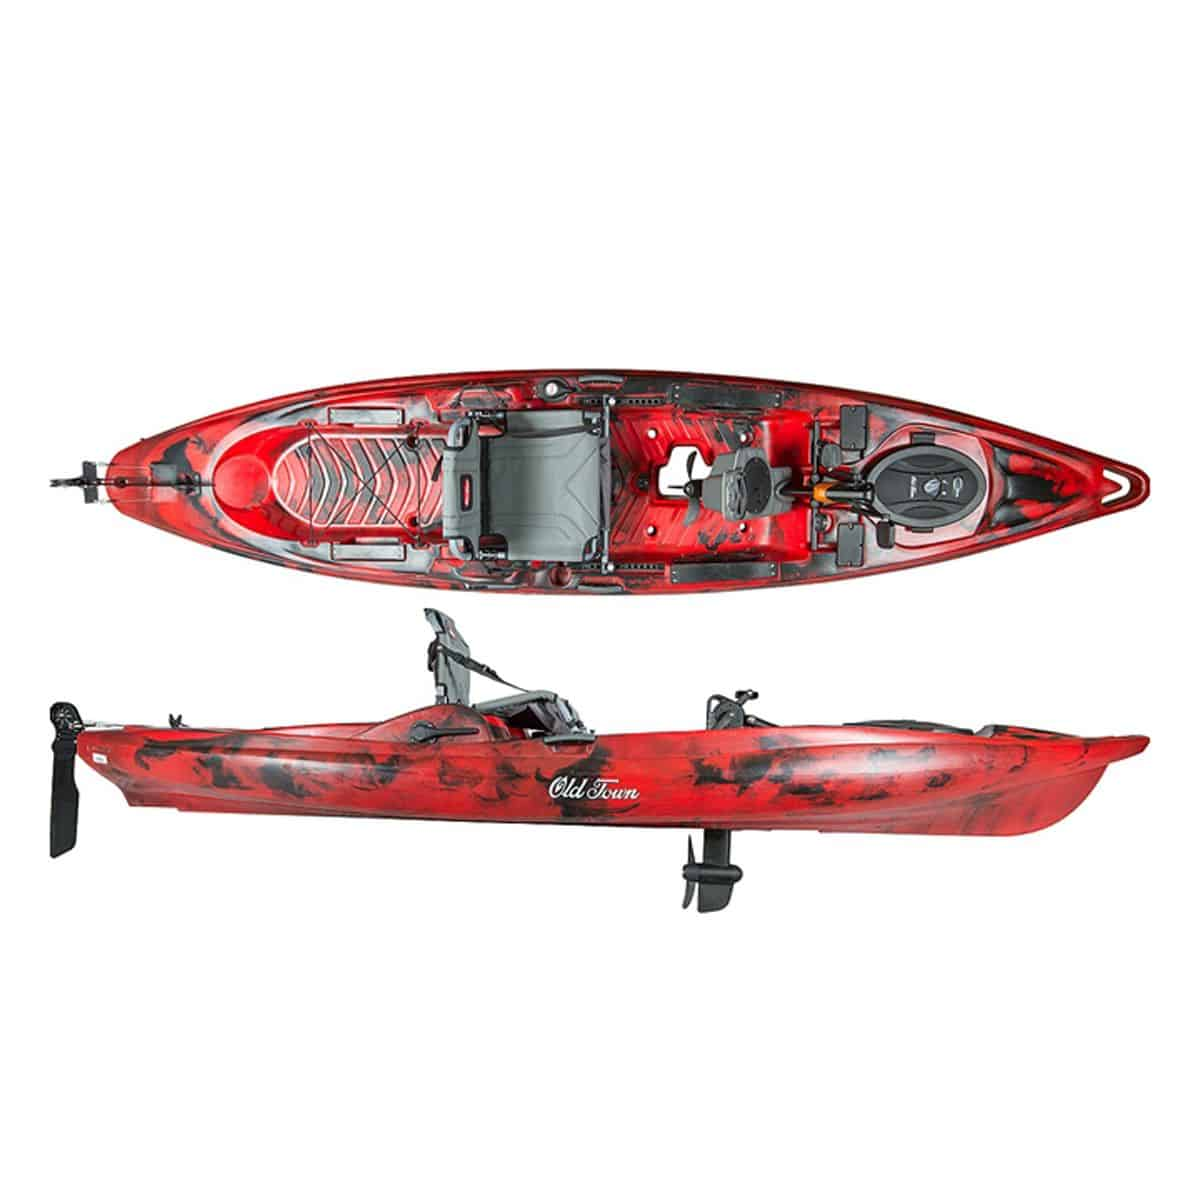 Old Town Predator PDL Kayak 2020 Stock arriving November 2020